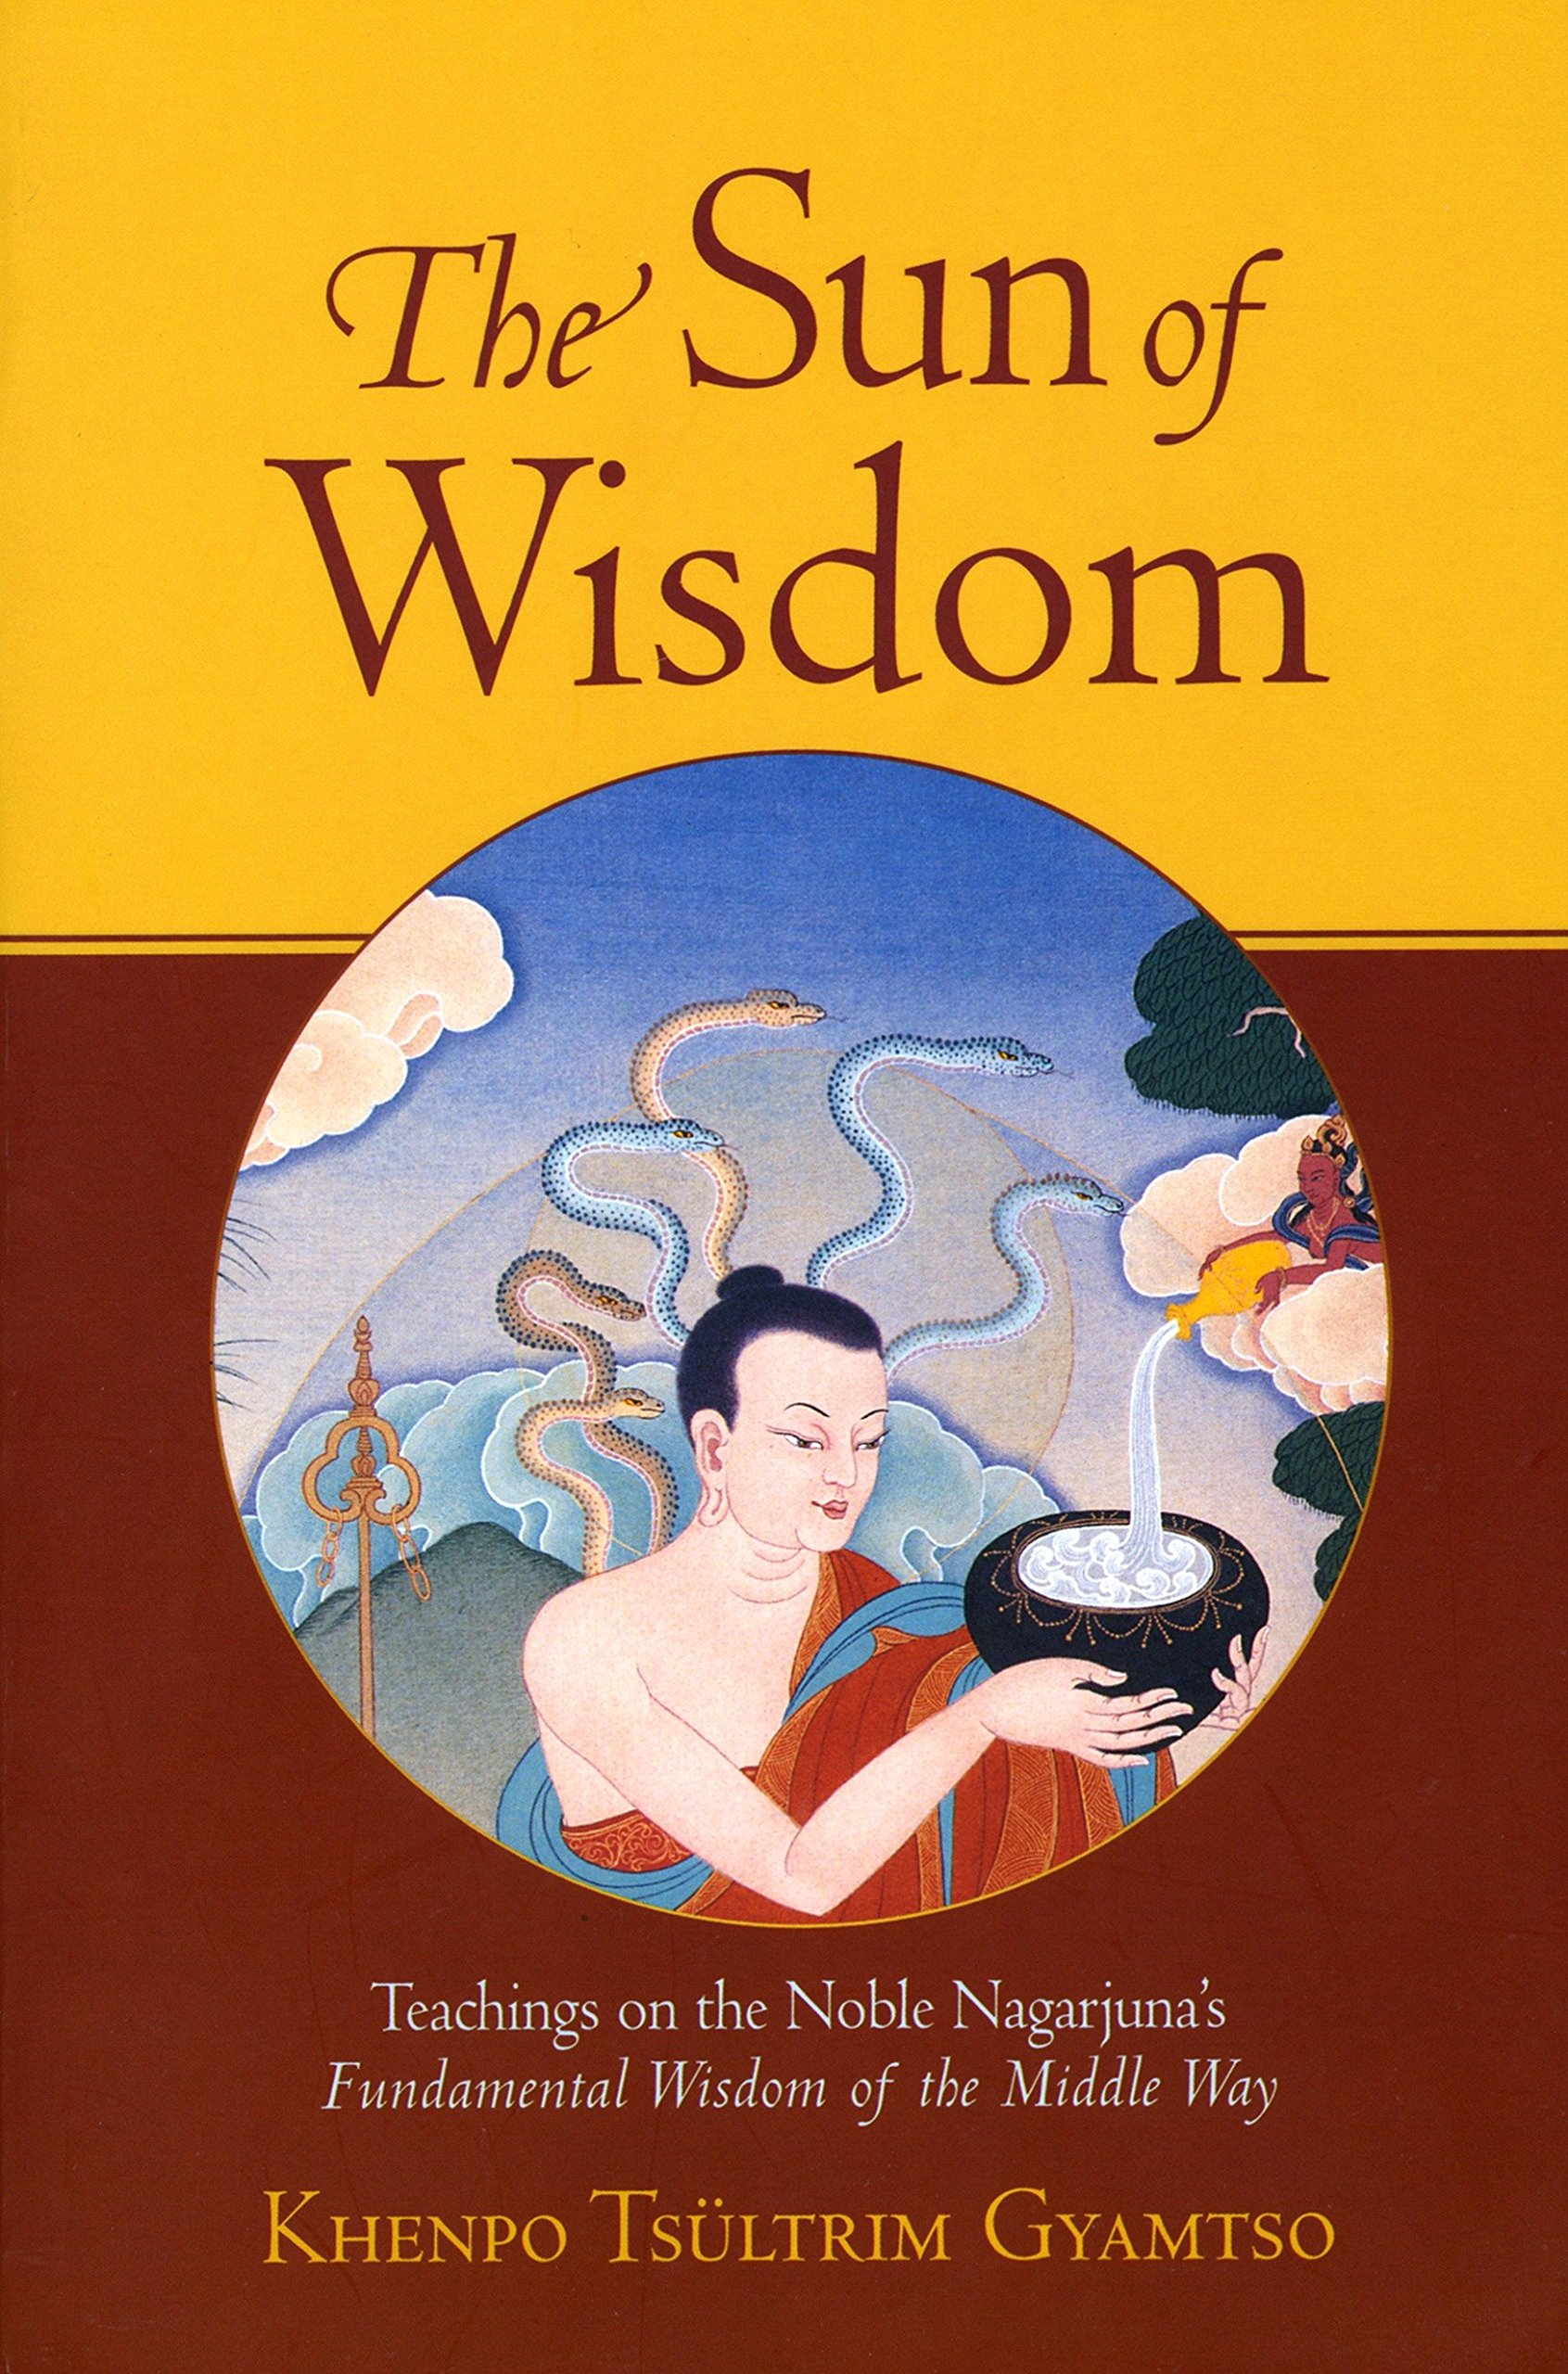 The Sun of Wisdom: Teachings on the Noble Nagarjuna's Fundamental Wisdom of the Middle Way PDF